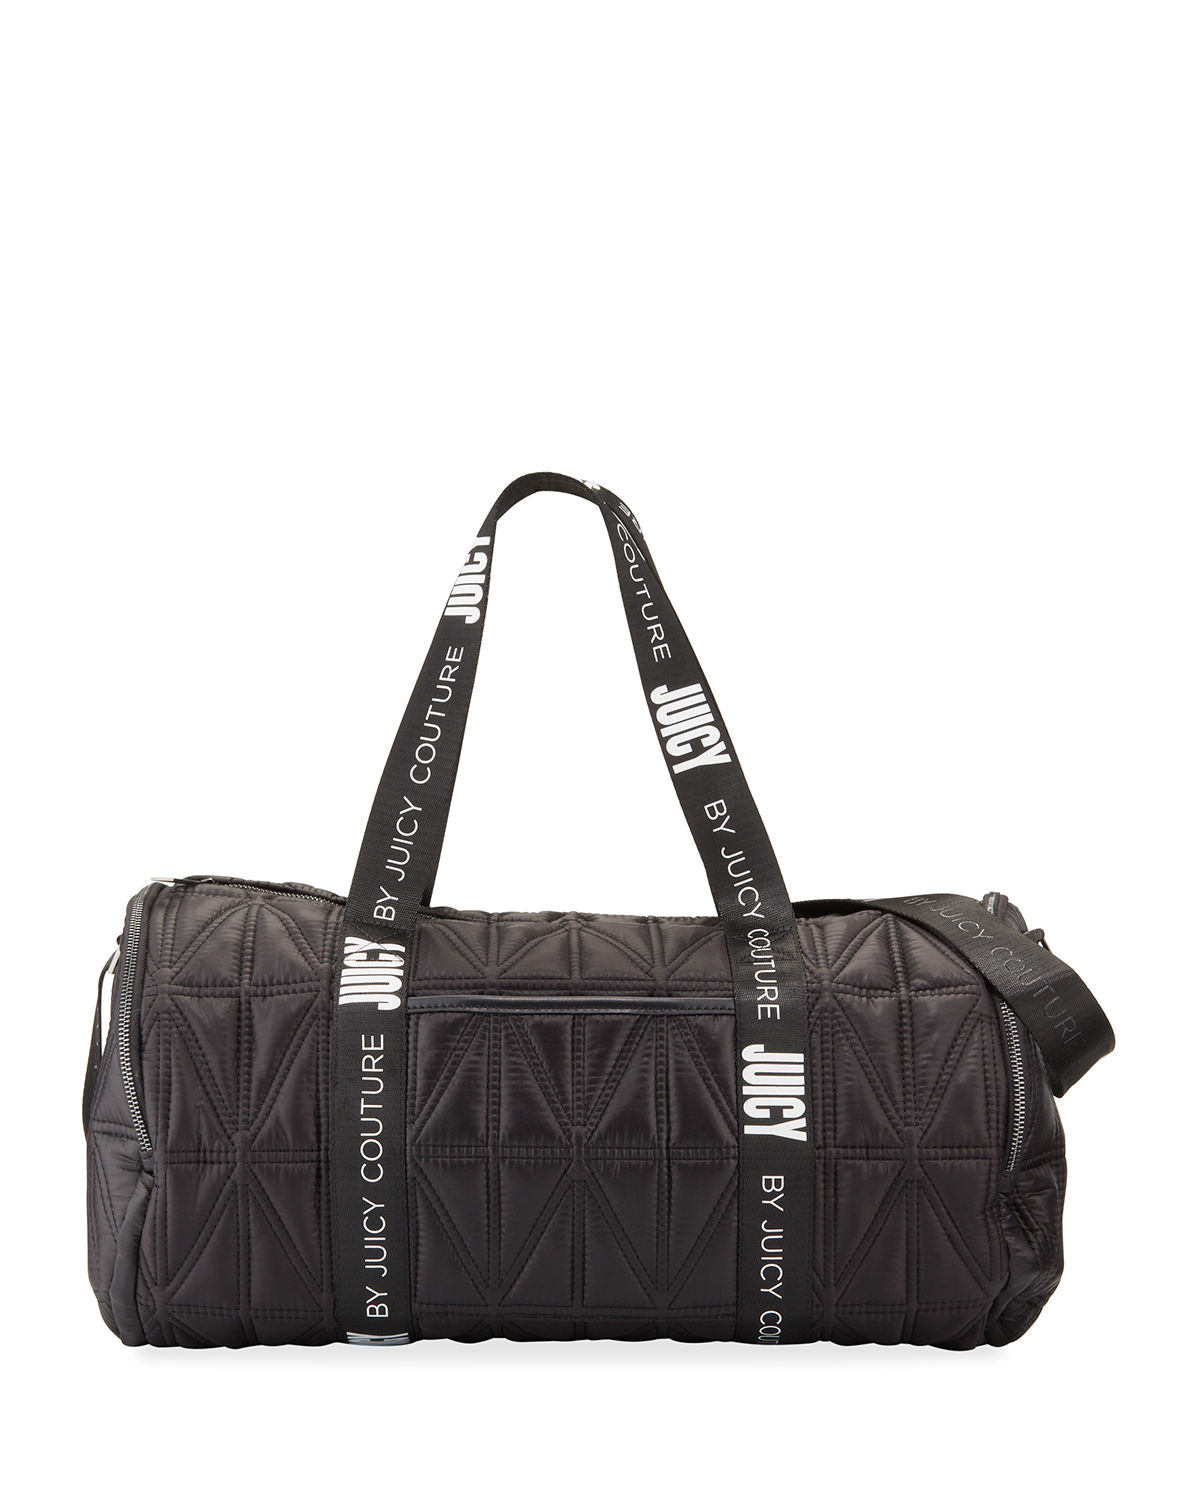 Sunset Zip Top Patchwork Nylon Duffel Bag